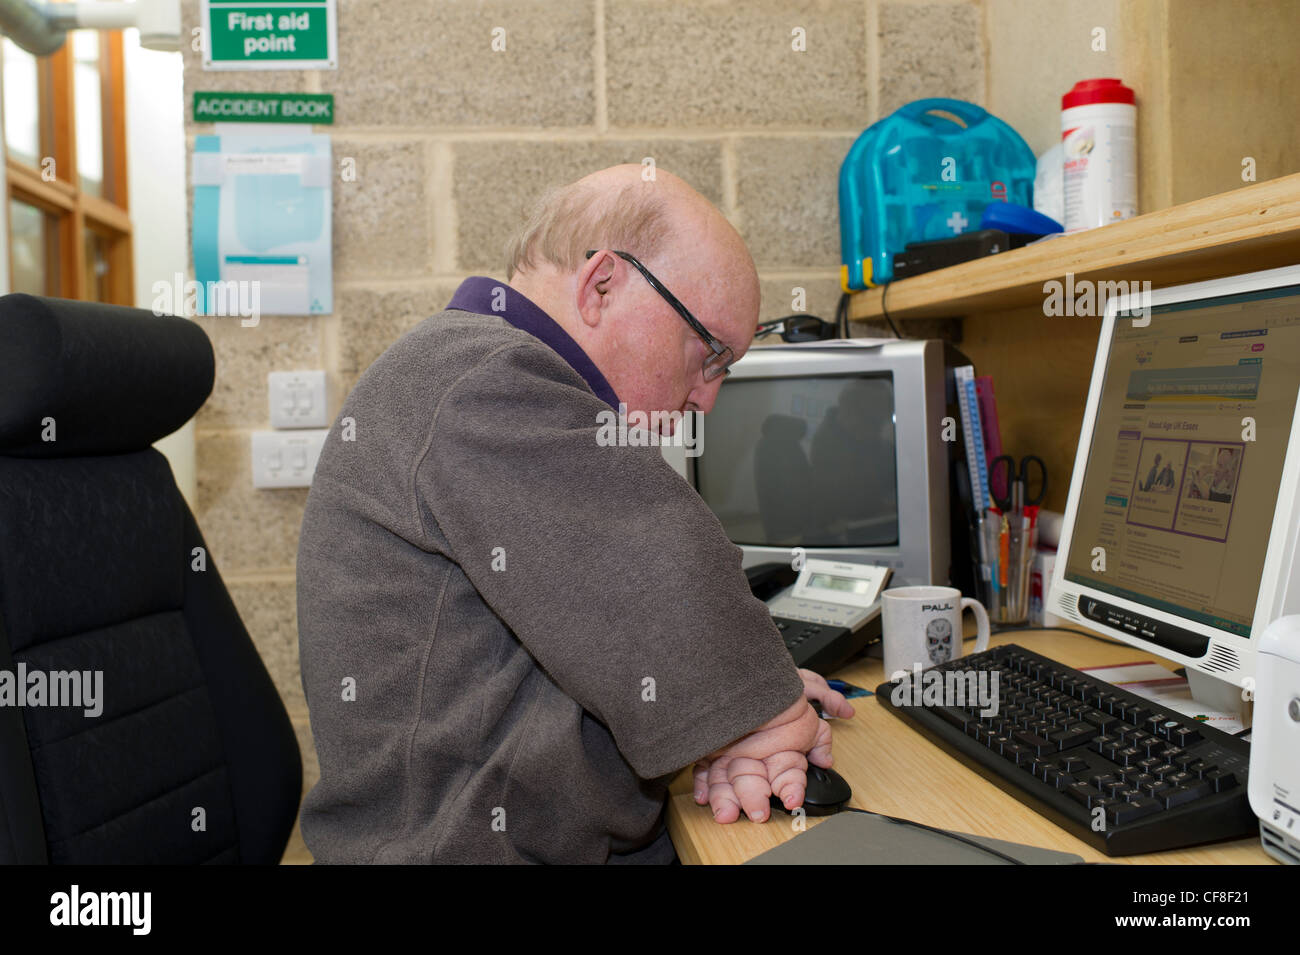 A disabled male with multiple congenital deformities working on the telephone helpline at the headquarters of Disability Stock Photo